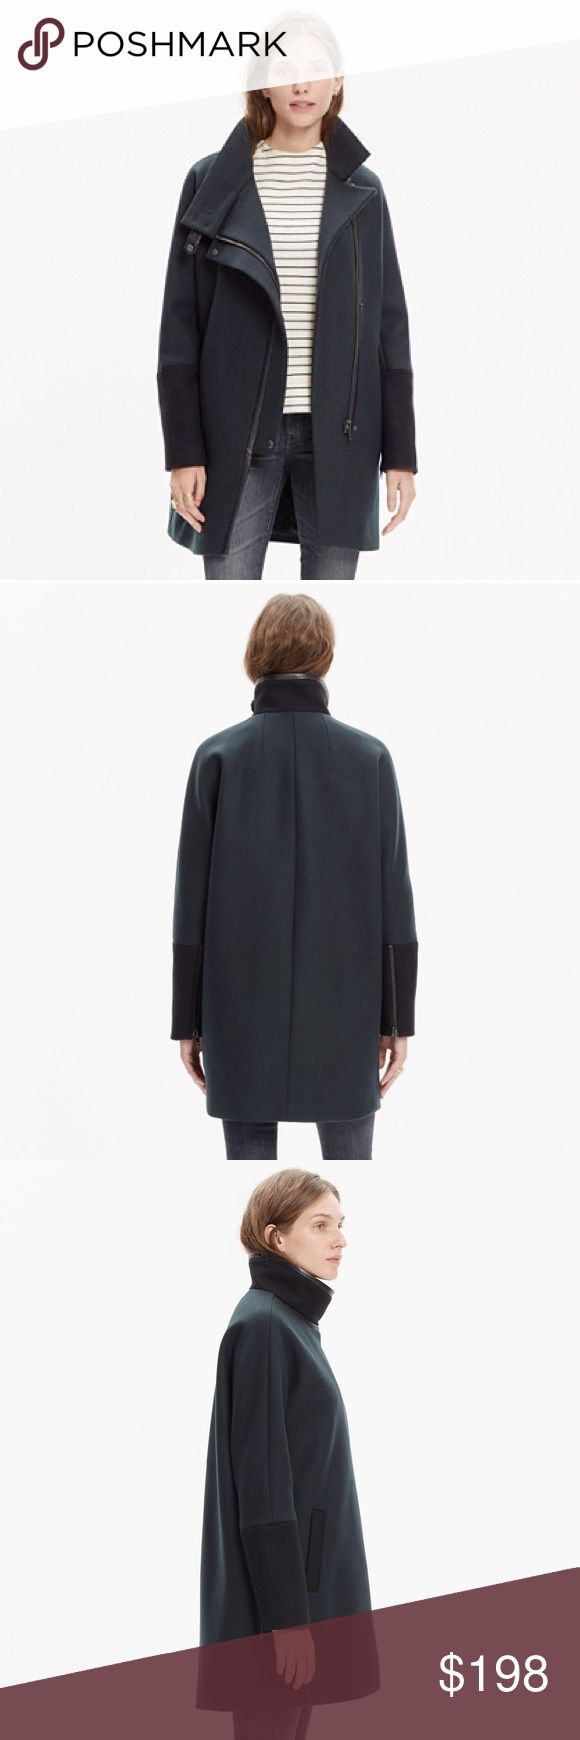 Madewell City Grid Coat in Colorblock Sz 2 Madewell wool City Grid coat, very lightly used. Color is dark forest green with black sleeves. No tears or stains and has only been worn once! 80% wool, 20% nylon, with leather trim on the collar. Size 2, but fit is oversized (would recommend for sizes 4-6 for normal fit). Extremely warm and very well made! I'm selling this one because I ended up getting the black version in a smaller size (which I love!). Madewell Jackets & Coats